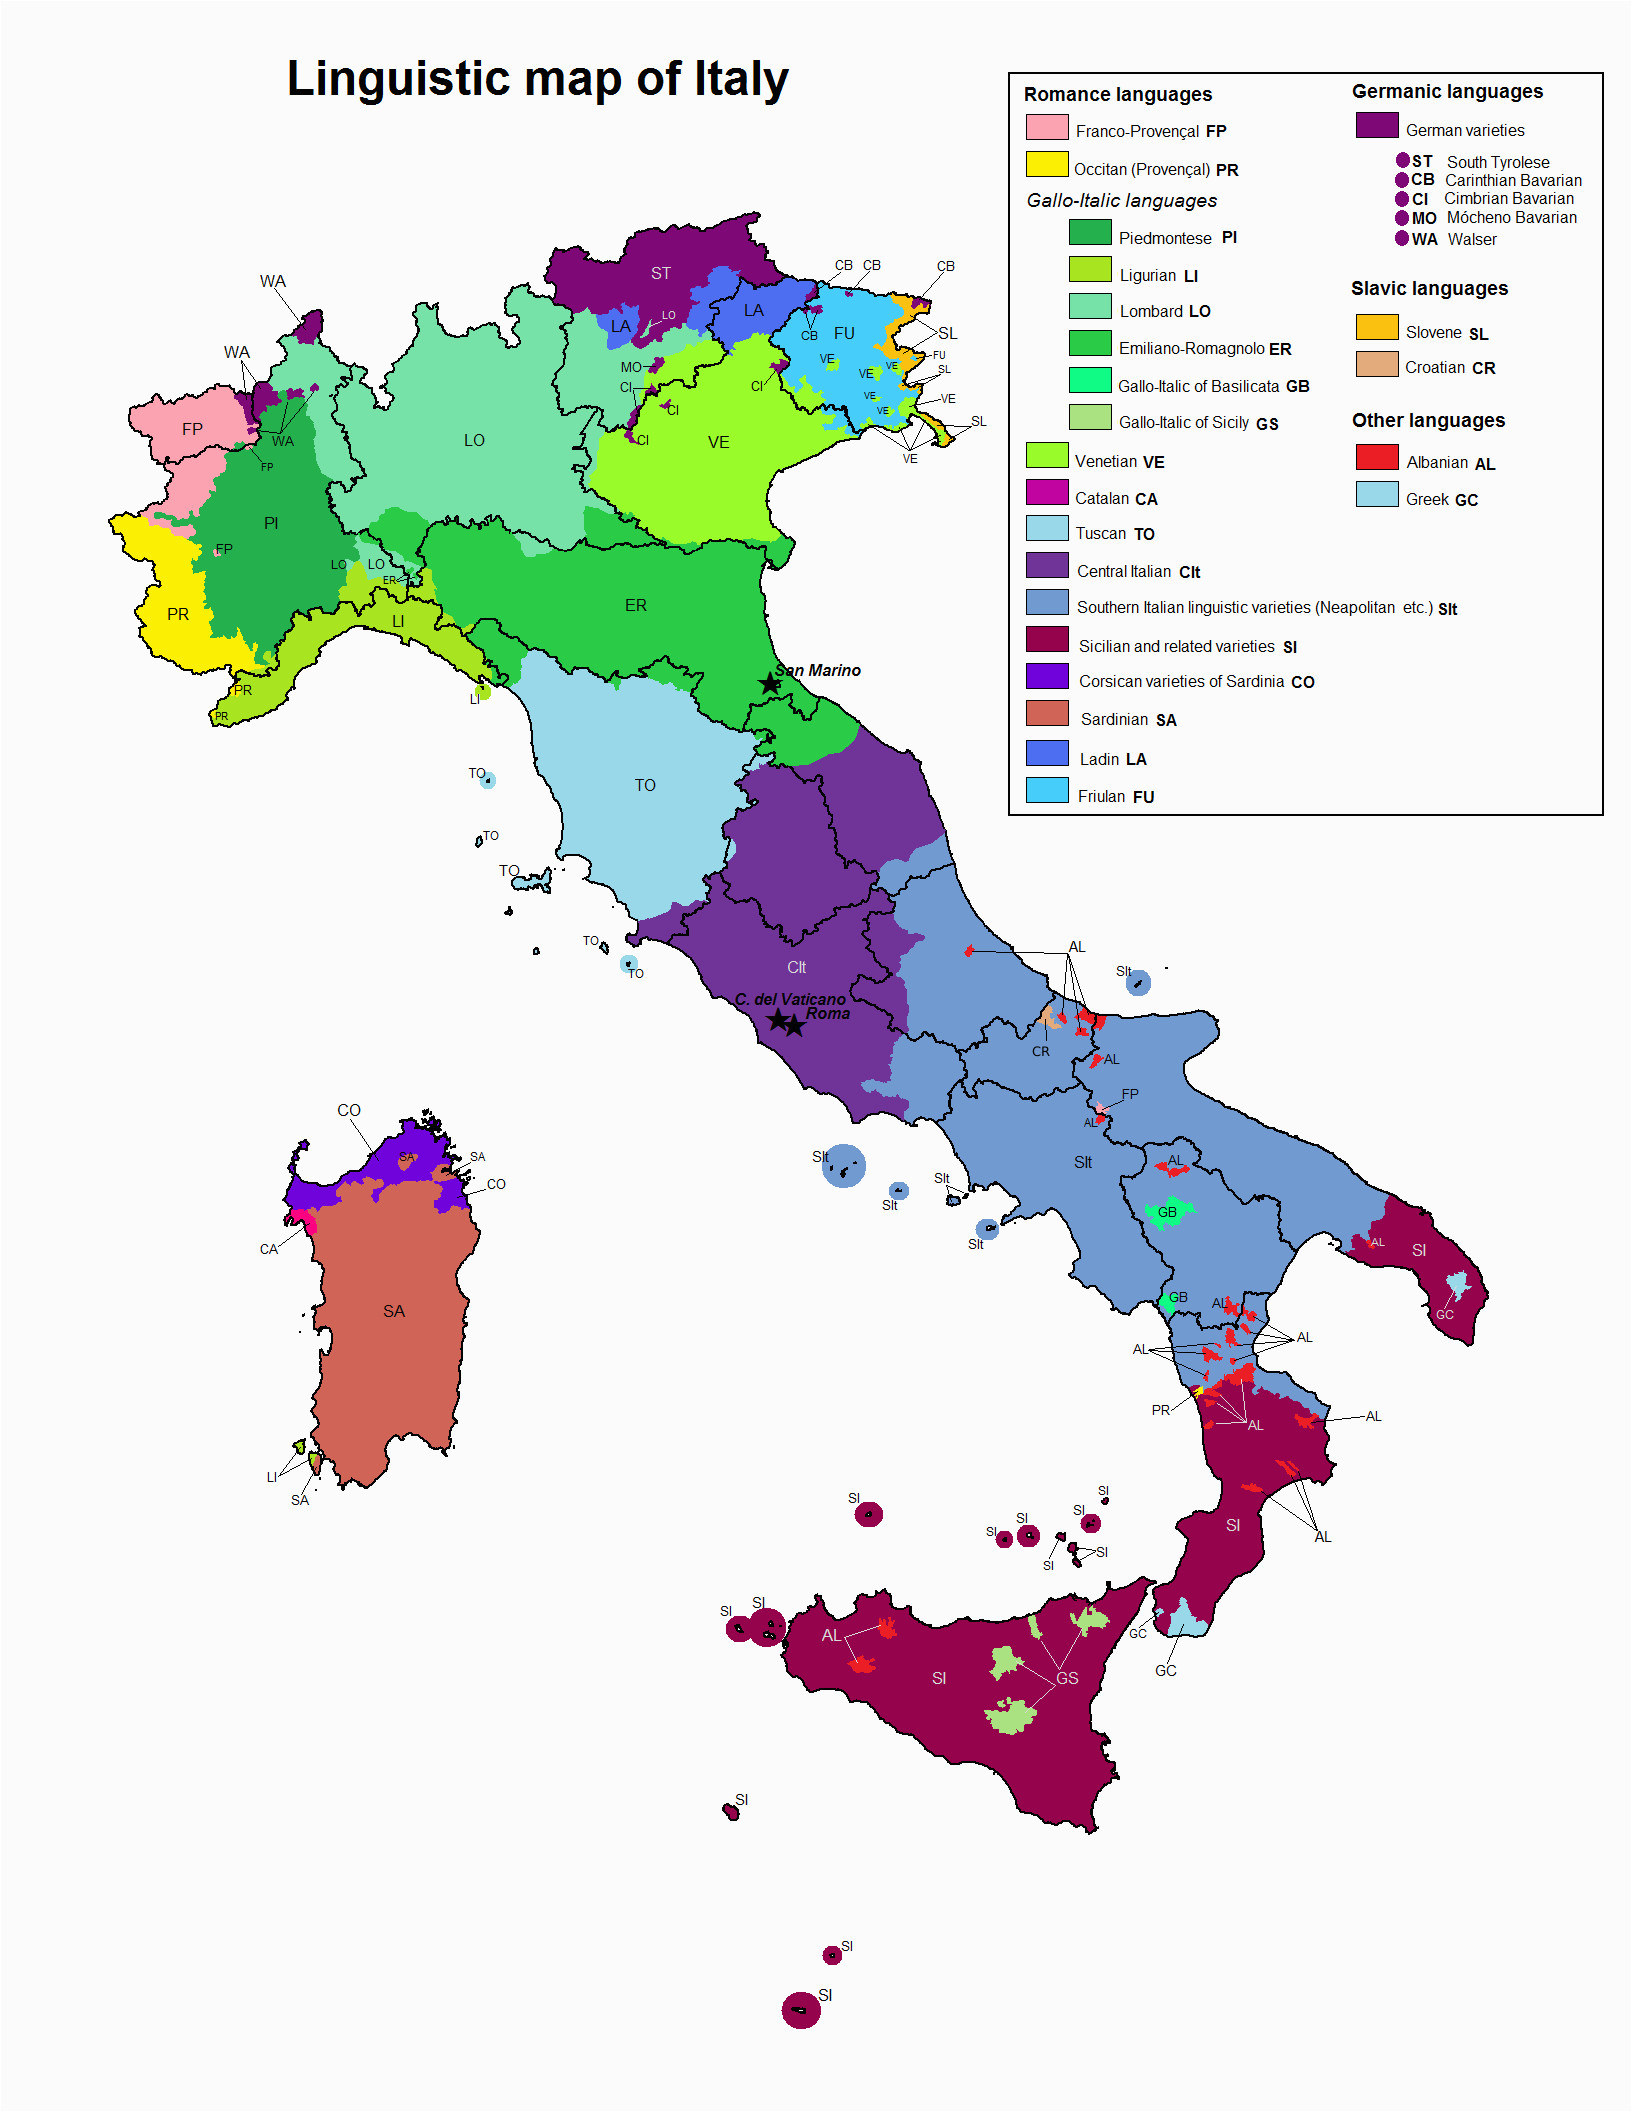 Picture Of Italy On A Map Linguistic Map Of Italy Maps Italy Map Map Of Italy Regions